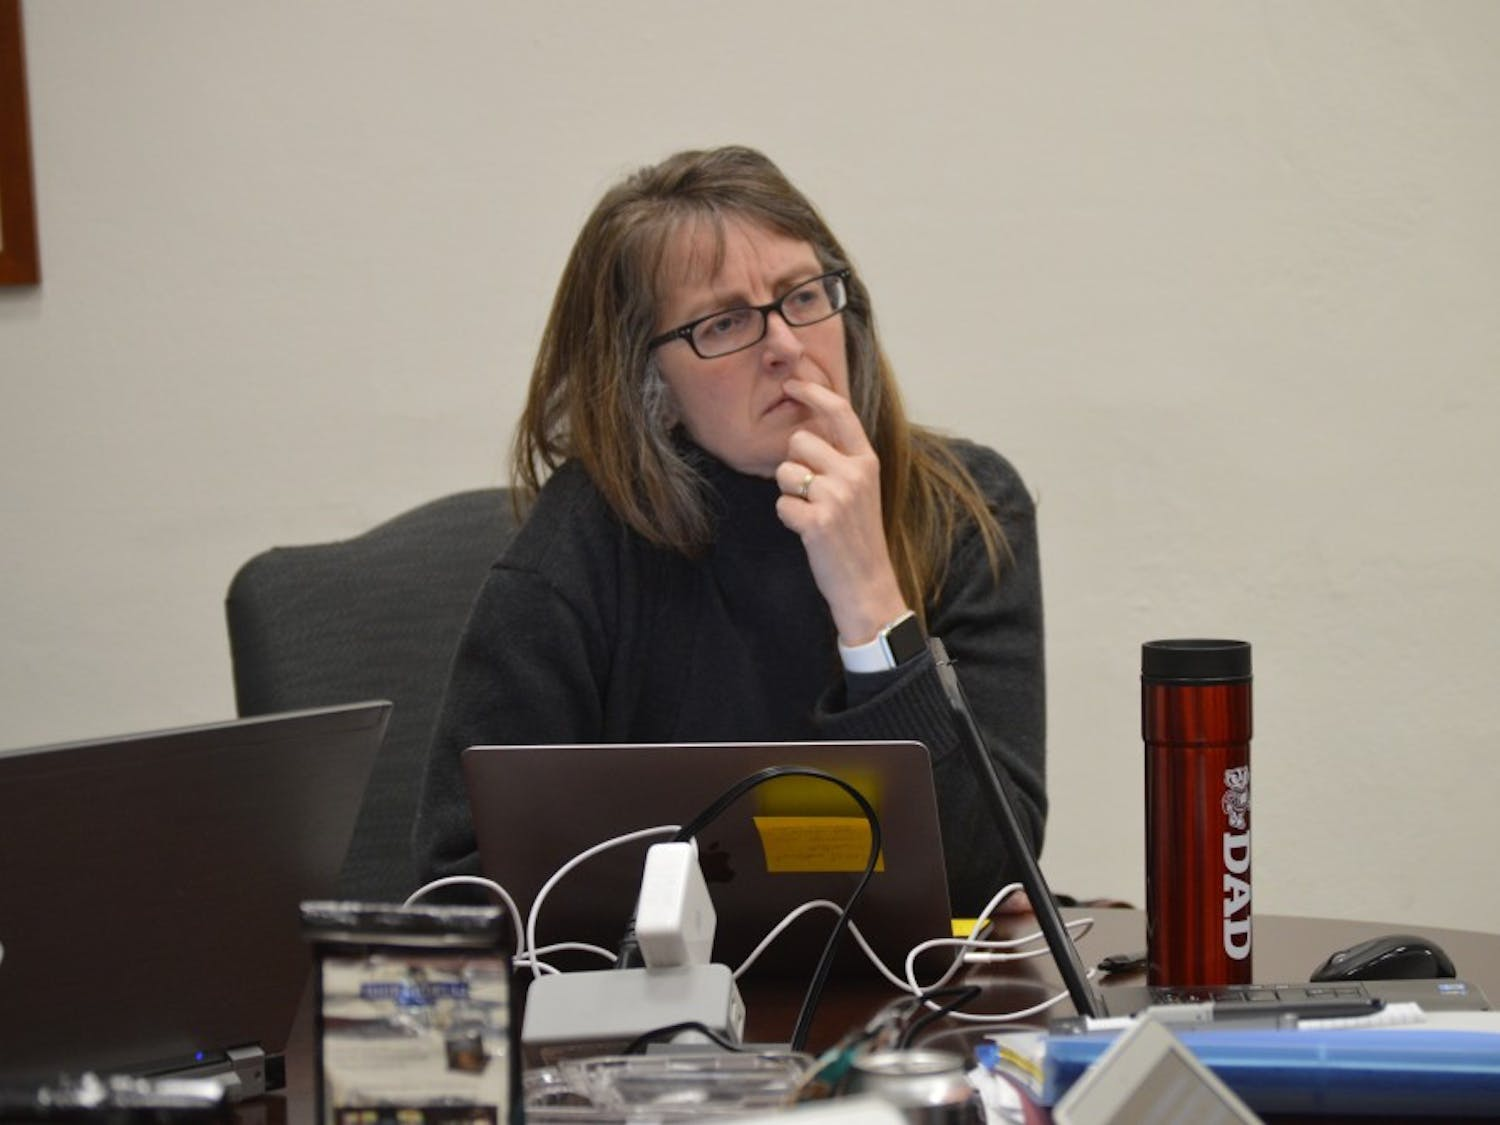 The University Committee, led by Chair Amy Wendt, discussed UW-Madison post-tenure review policy in a meeting Tuesday.